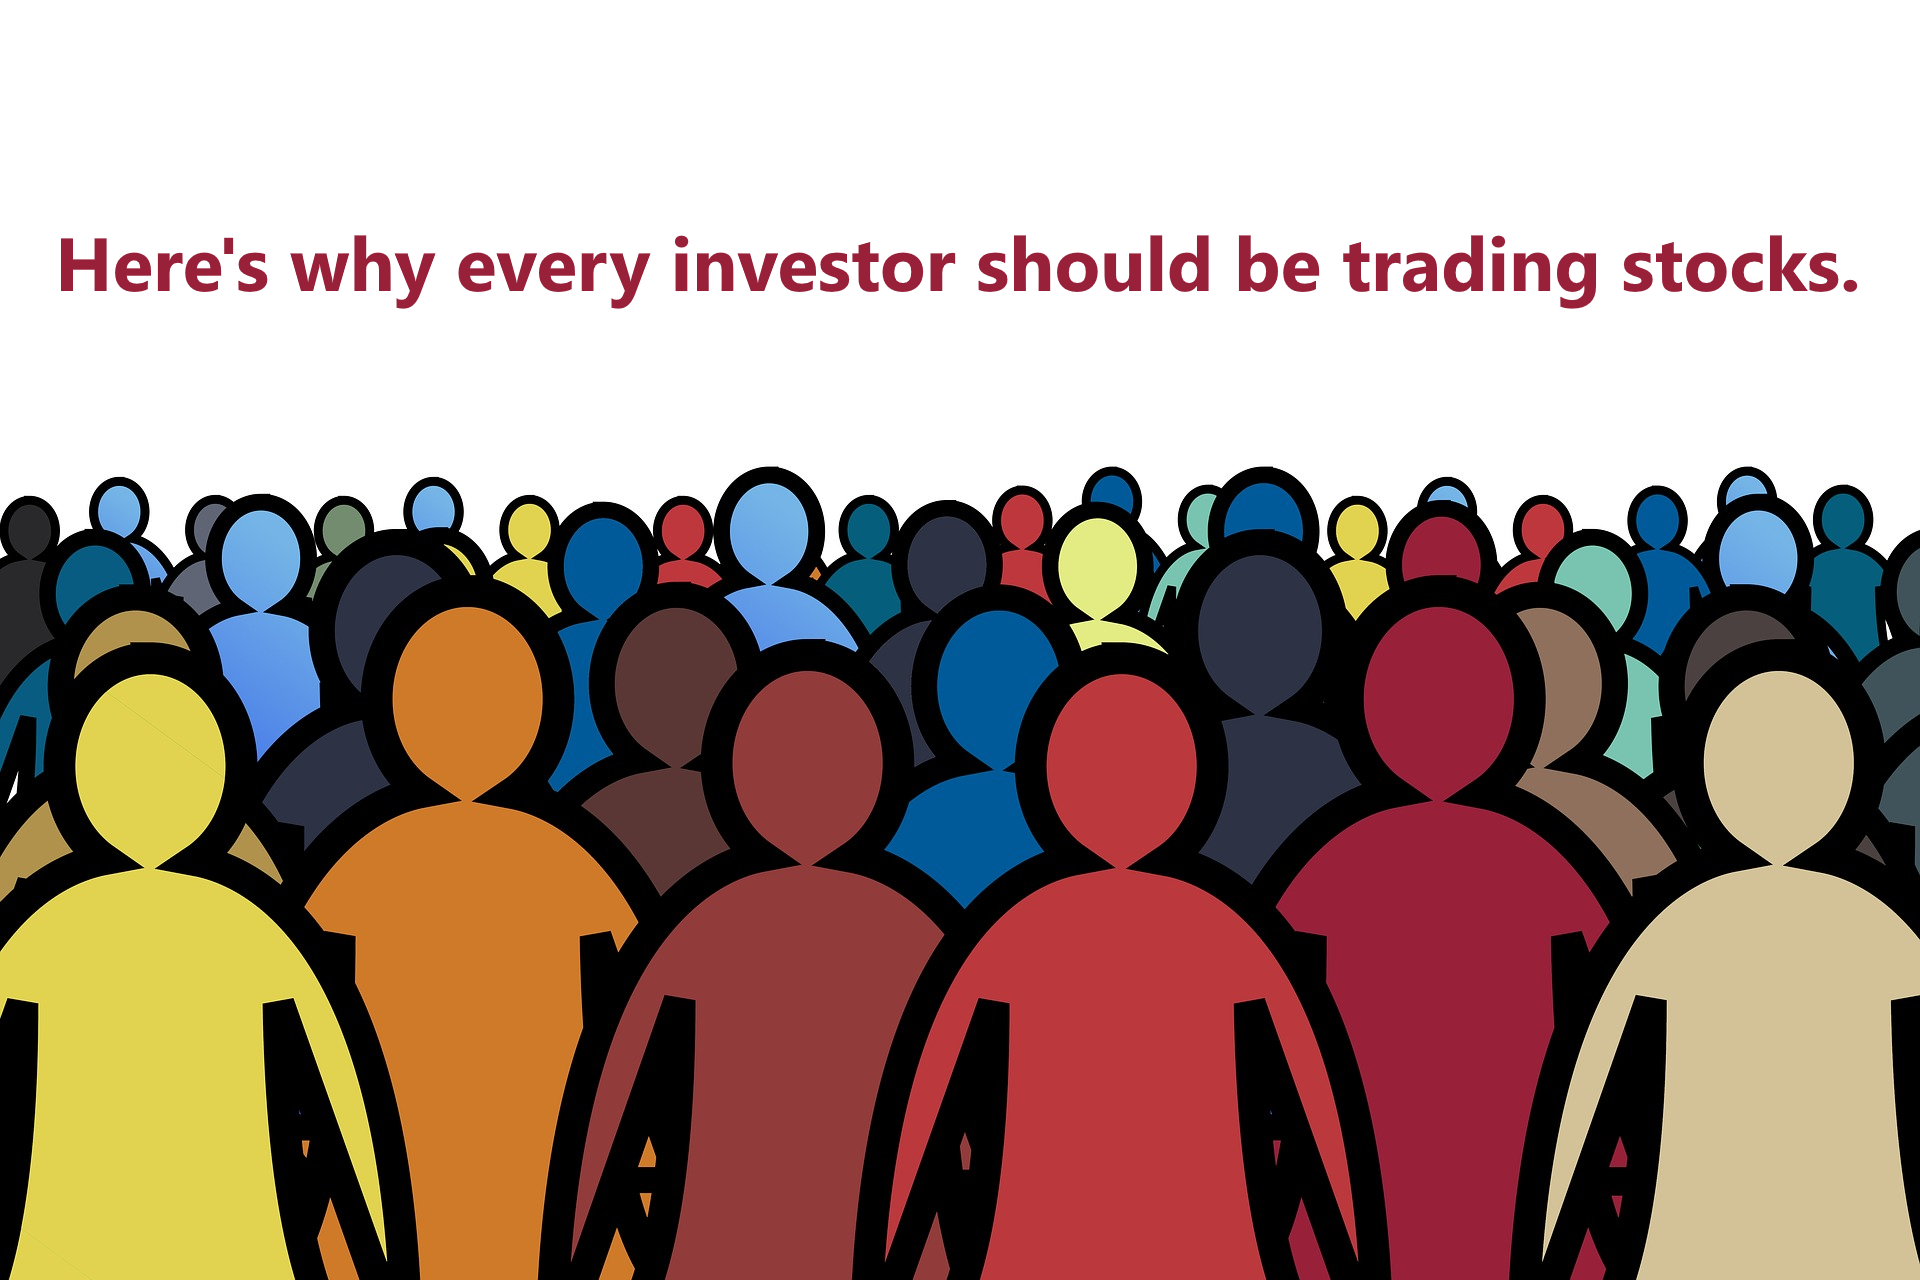 The average investor can gain major benefits by actively trading stocks online.